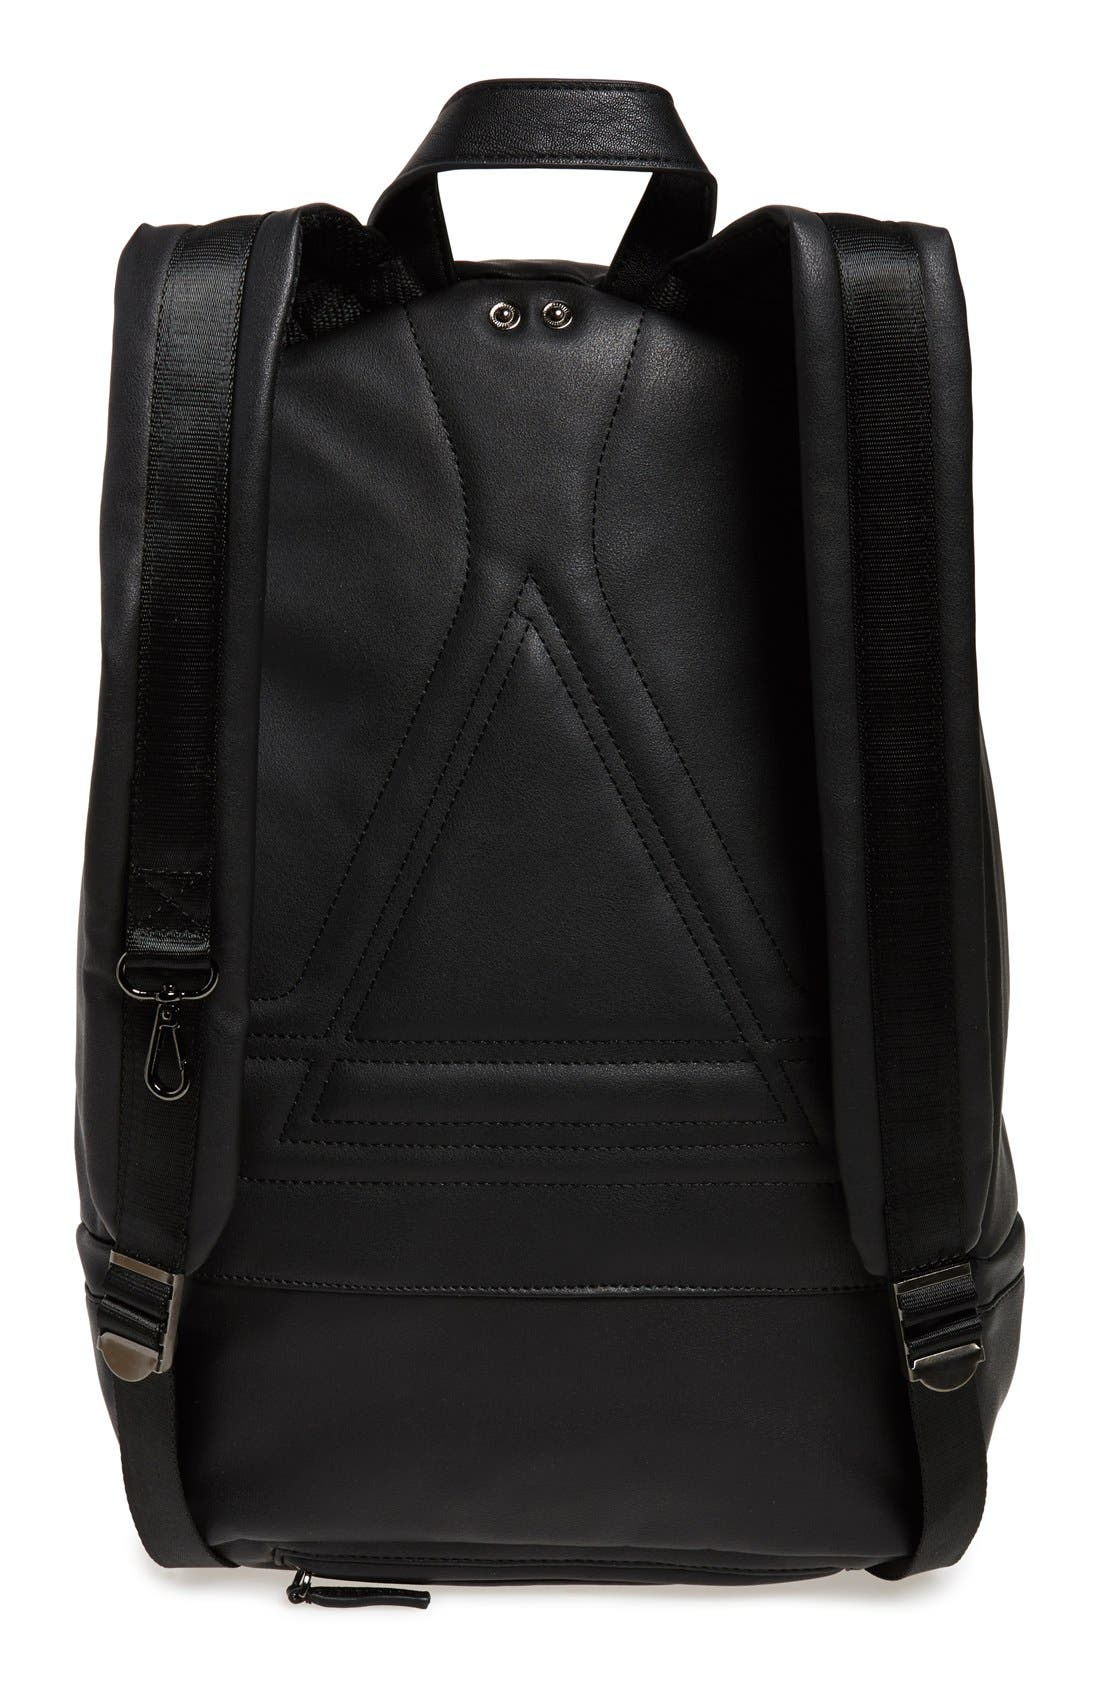 'Karl is My Father' Faux-Leather Backpack with Rain Cover,                             Alternate thumbnail 6, color,                             001